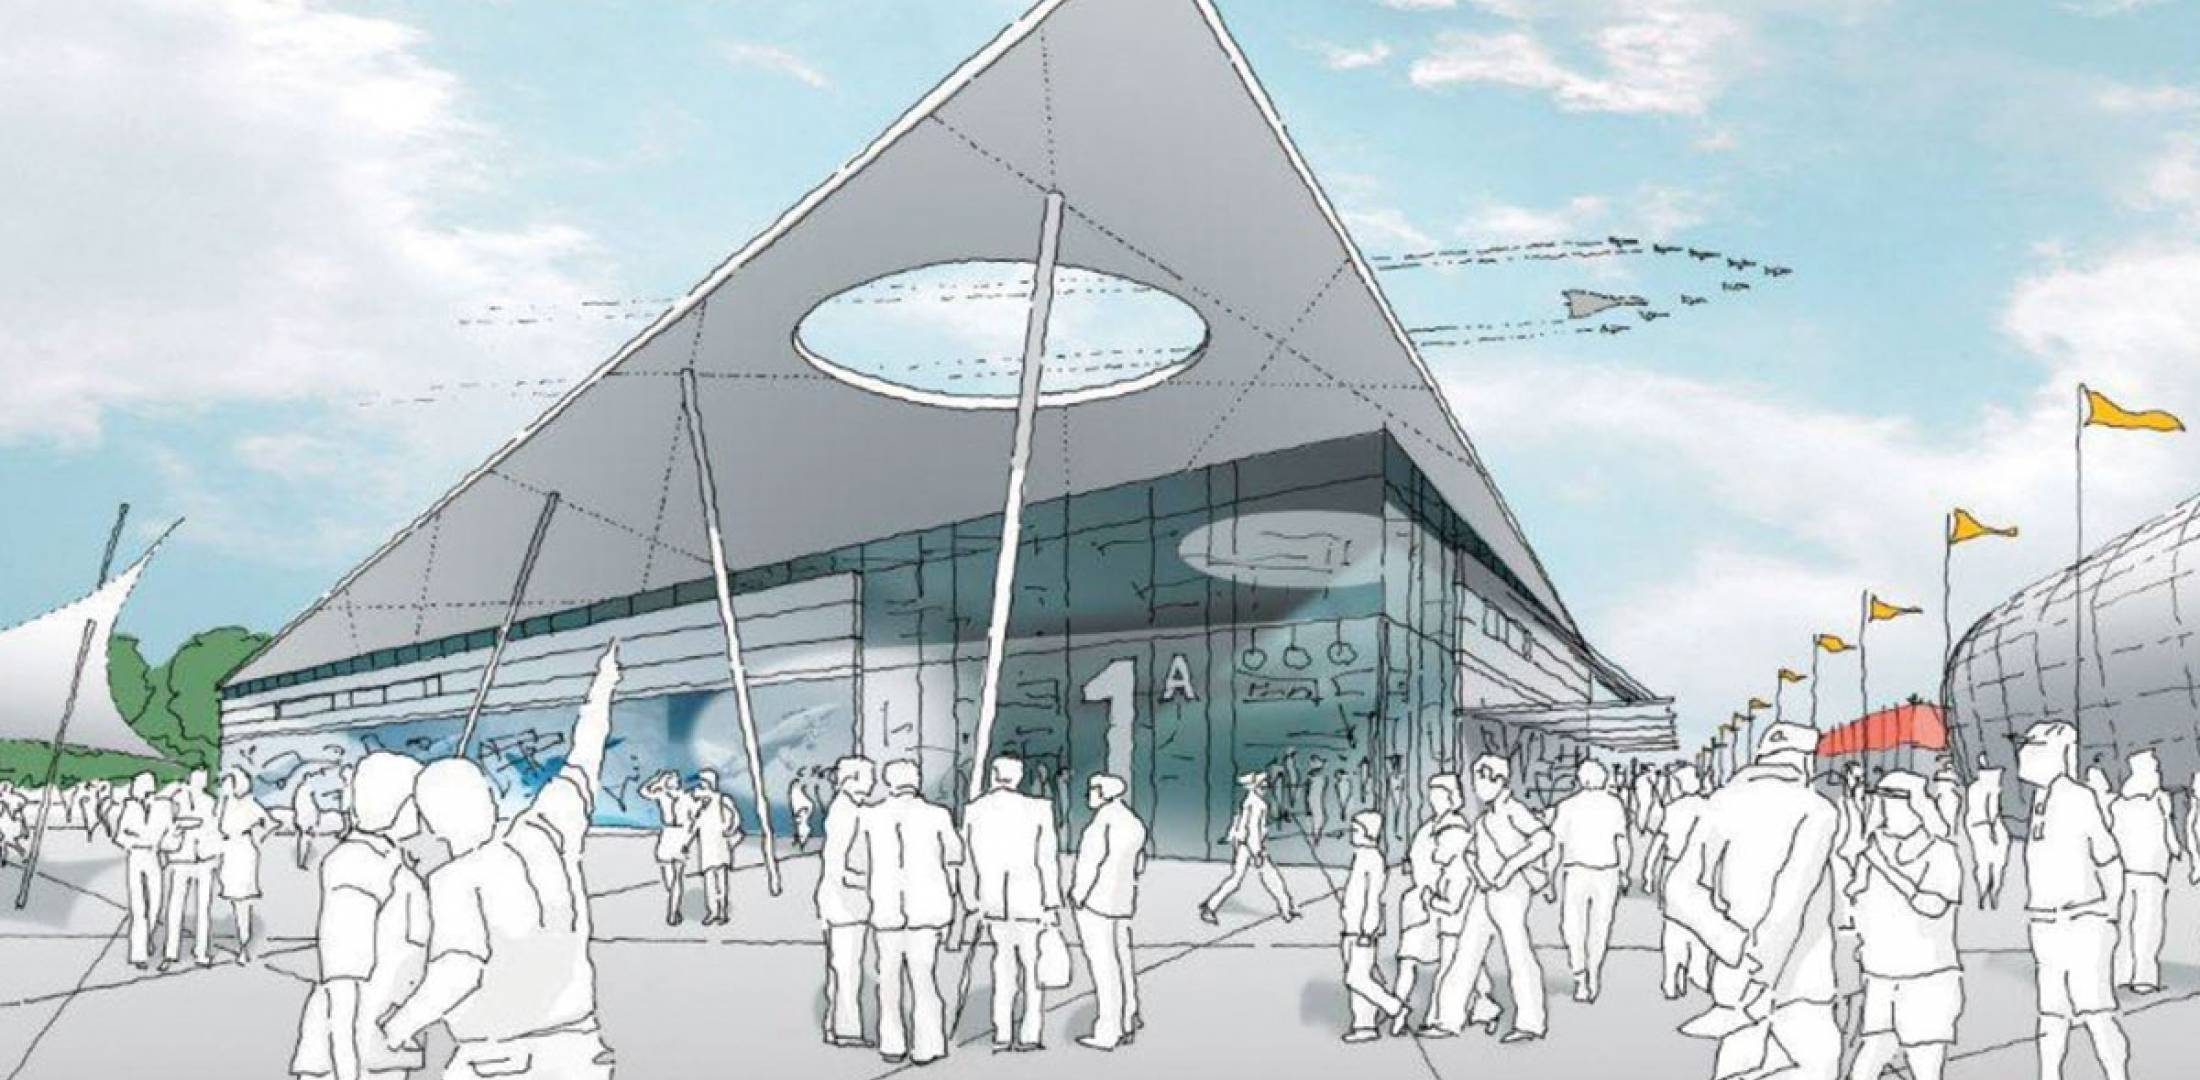 Premier Designs Youngstown Air Show Website: Farnborough Airshow Venue To Get £25 Million Makeover